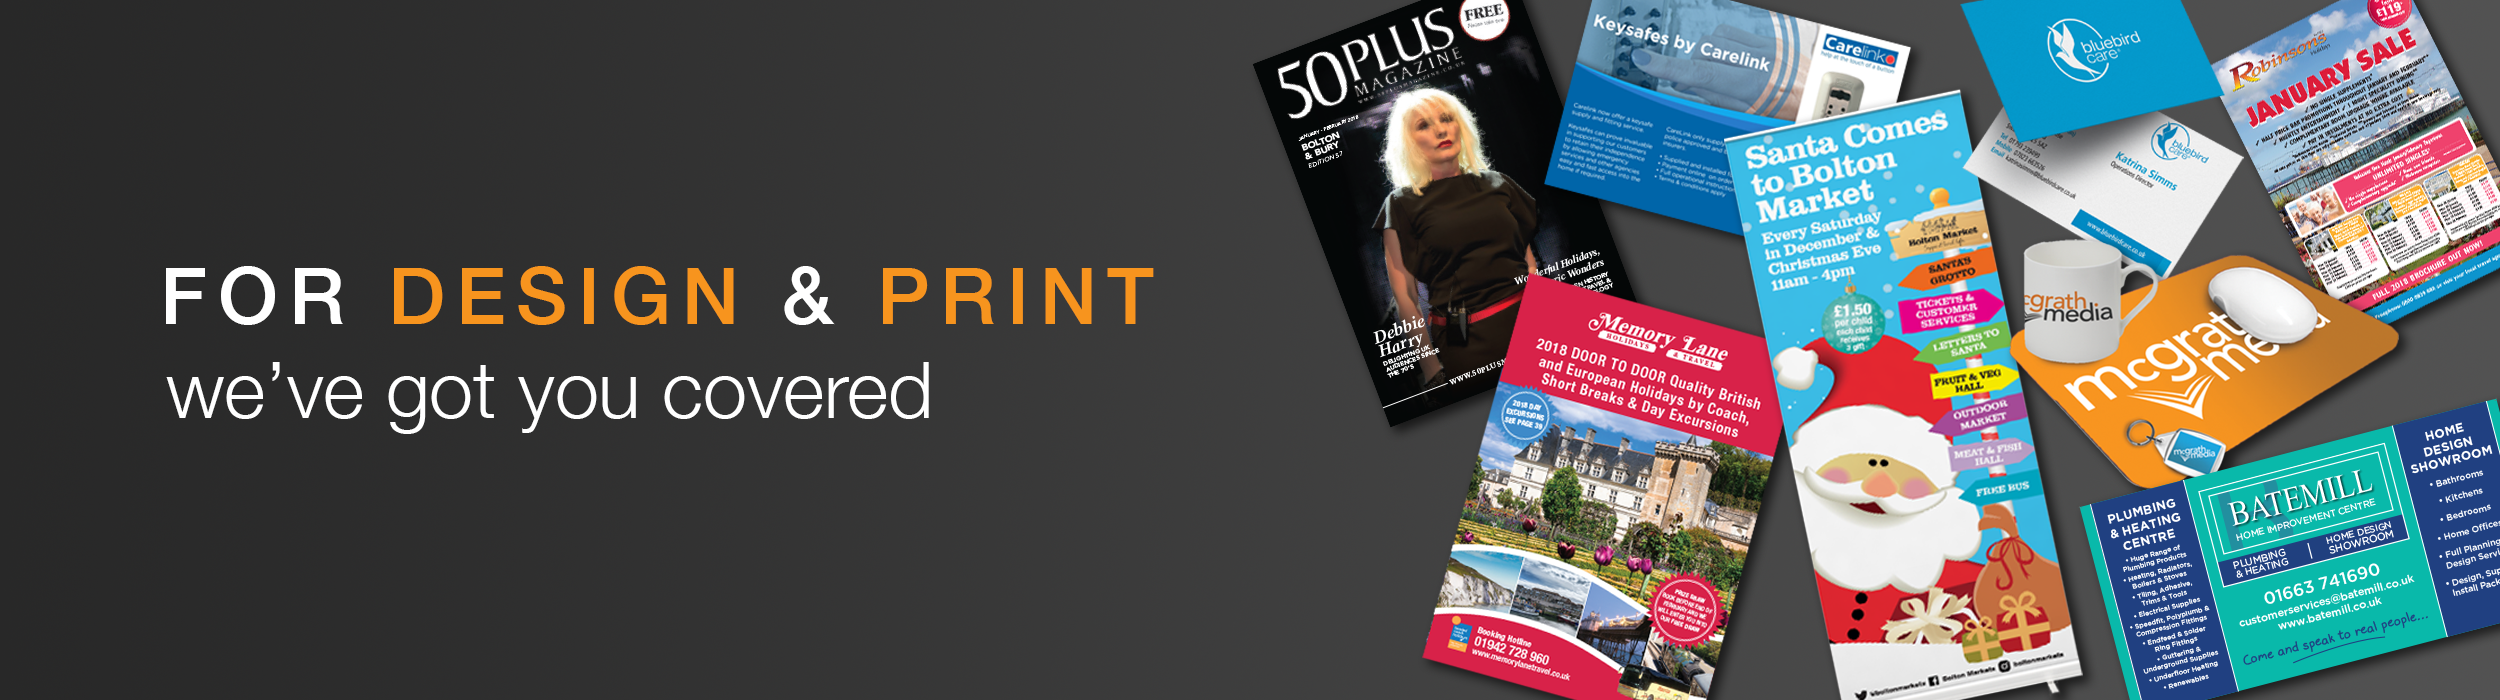 We are a bolton based business with over 20 years combined experience in design print we aim to make sure you get the best possible outcome in every